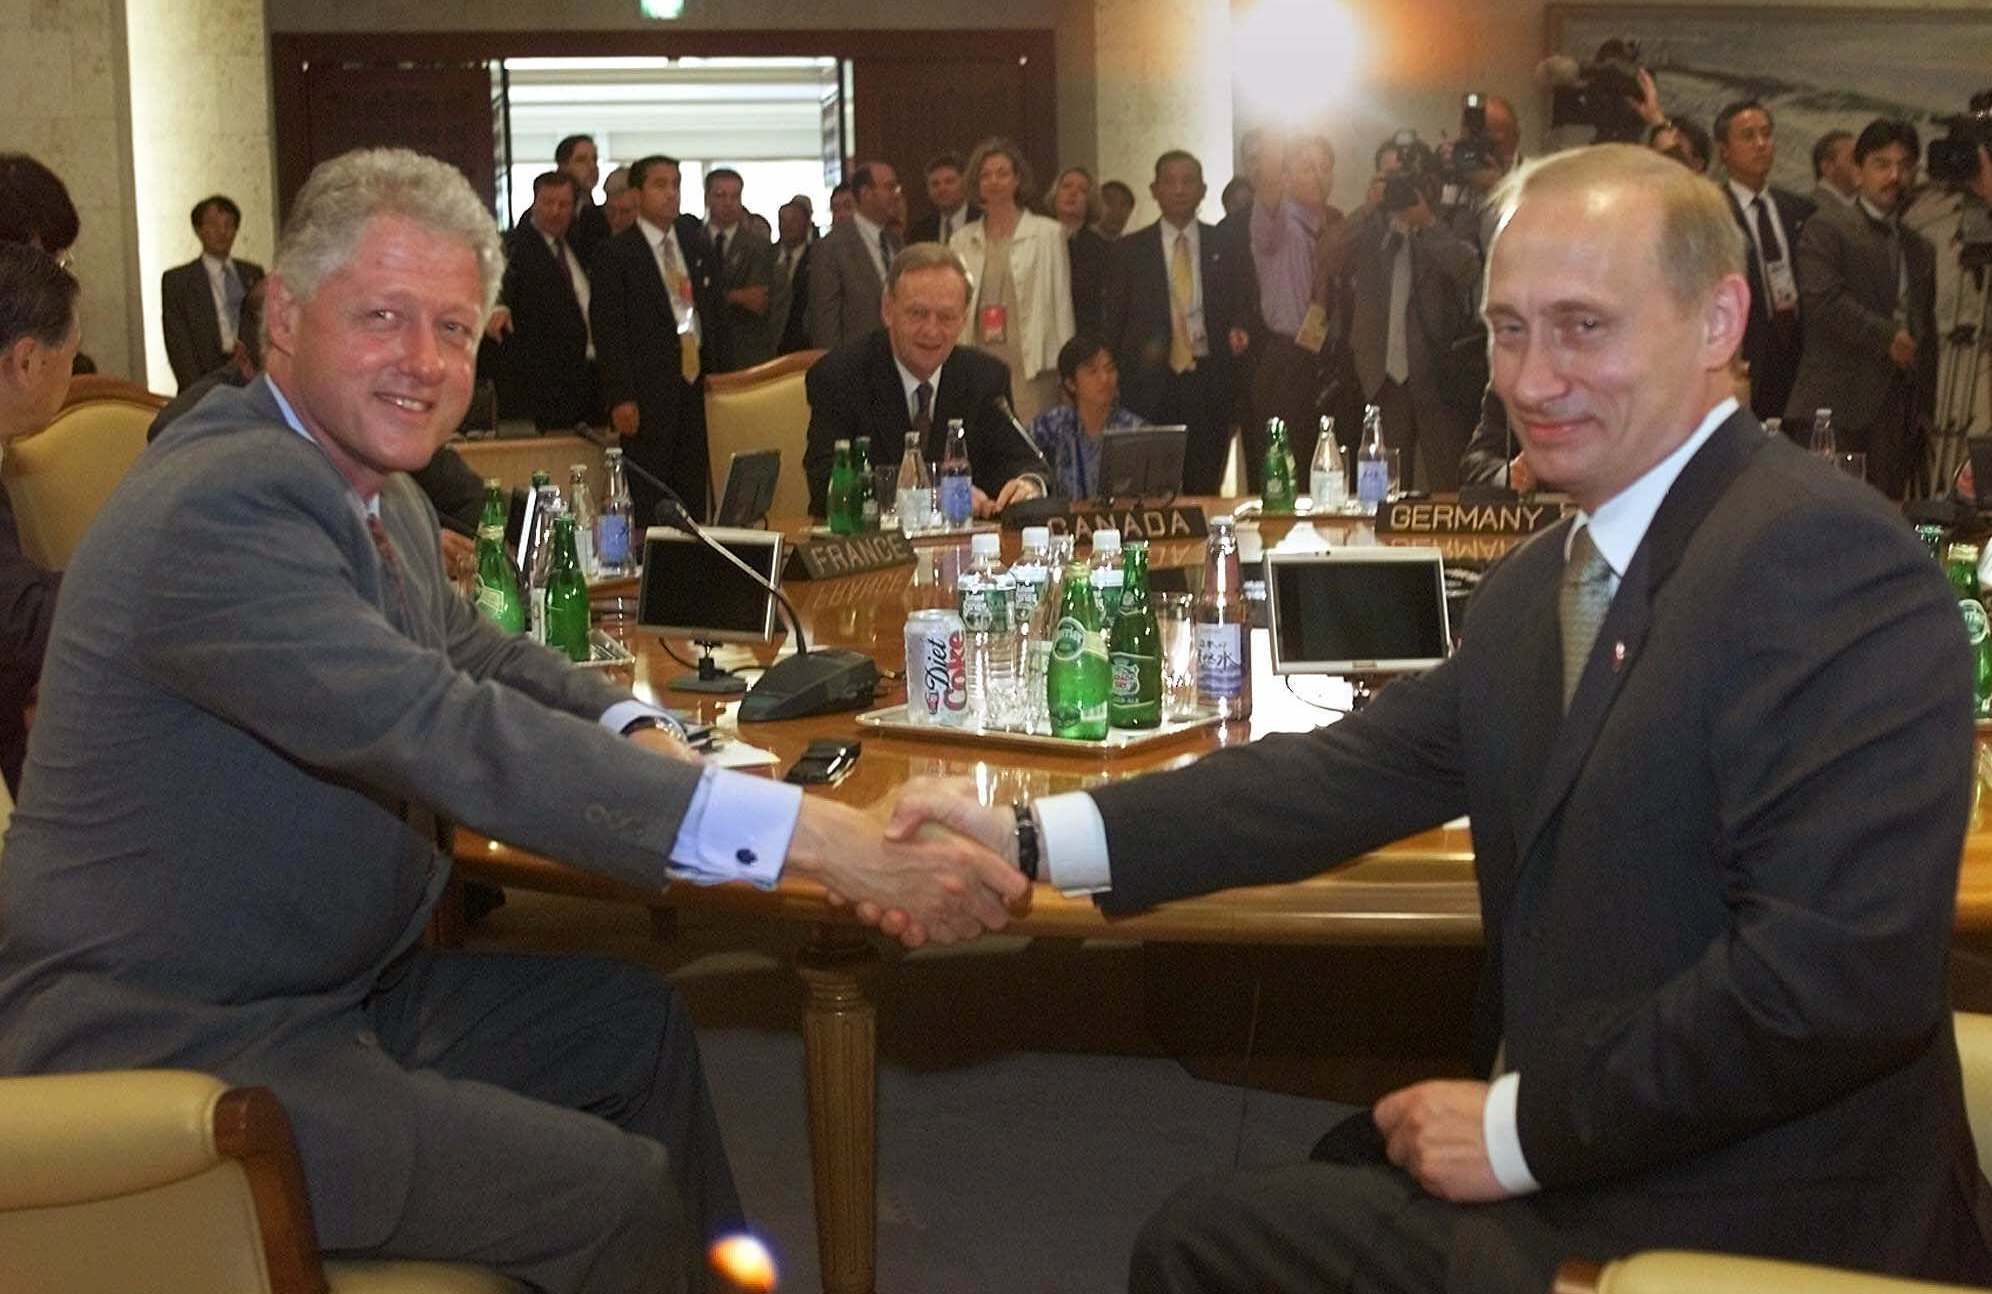 Bill Clinton Once Told Tony Blair That Vladimir Putin Had Enormous Potential